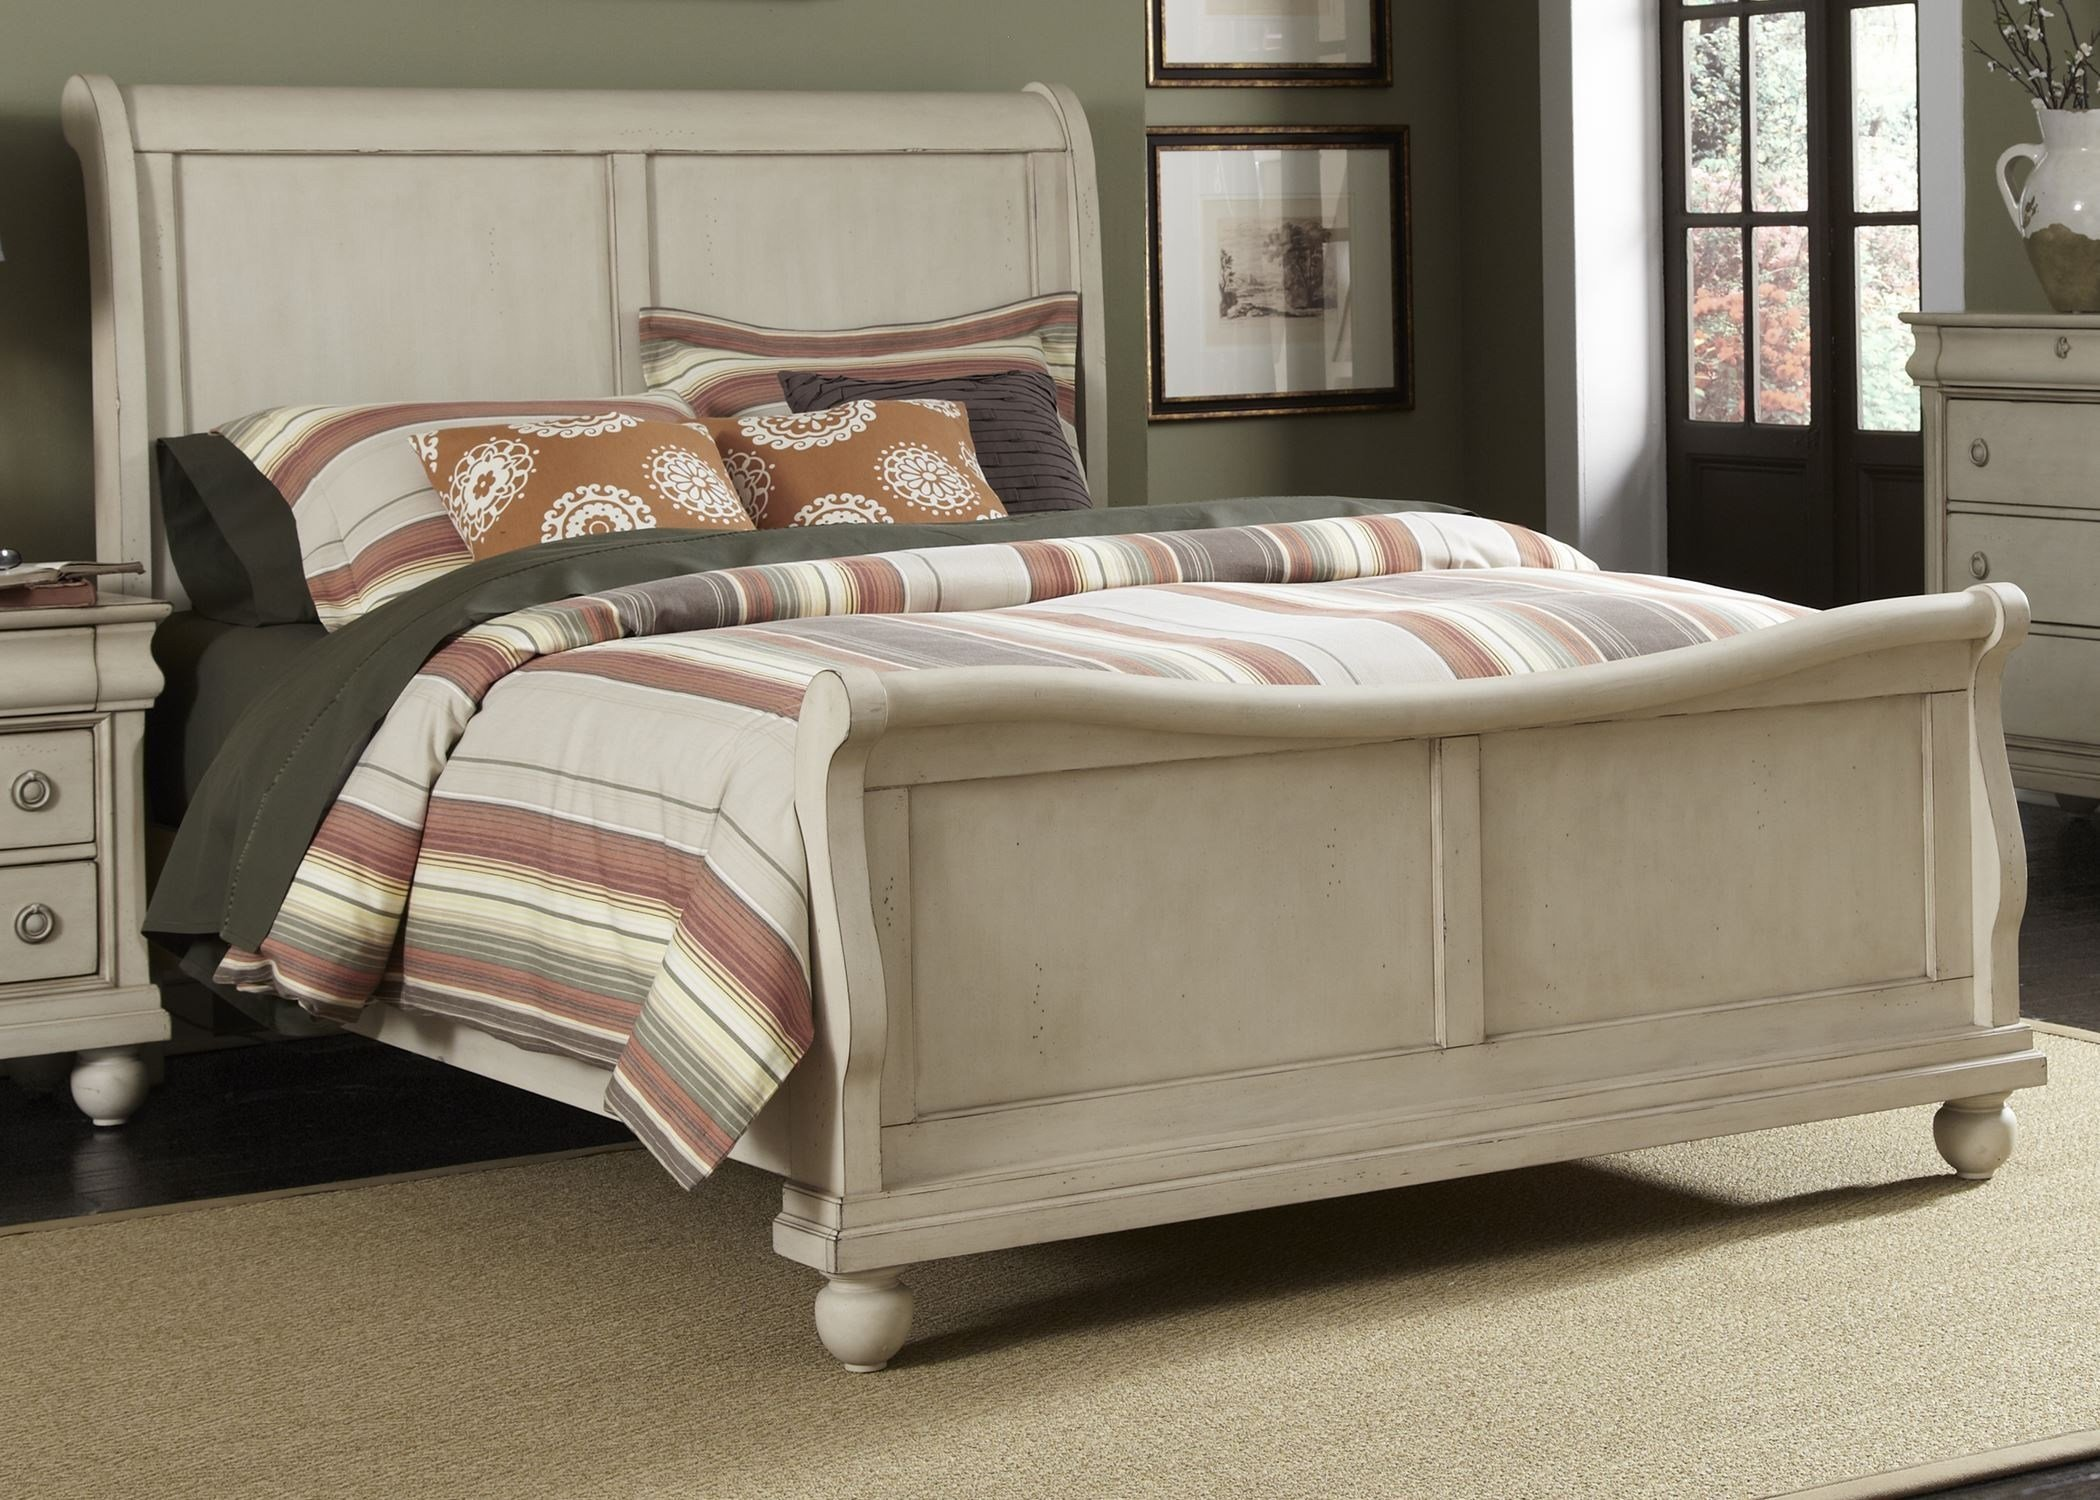 Best Rustic Traditions Ii Sleigh Bedroom Set From Liberty 689 With Pictures